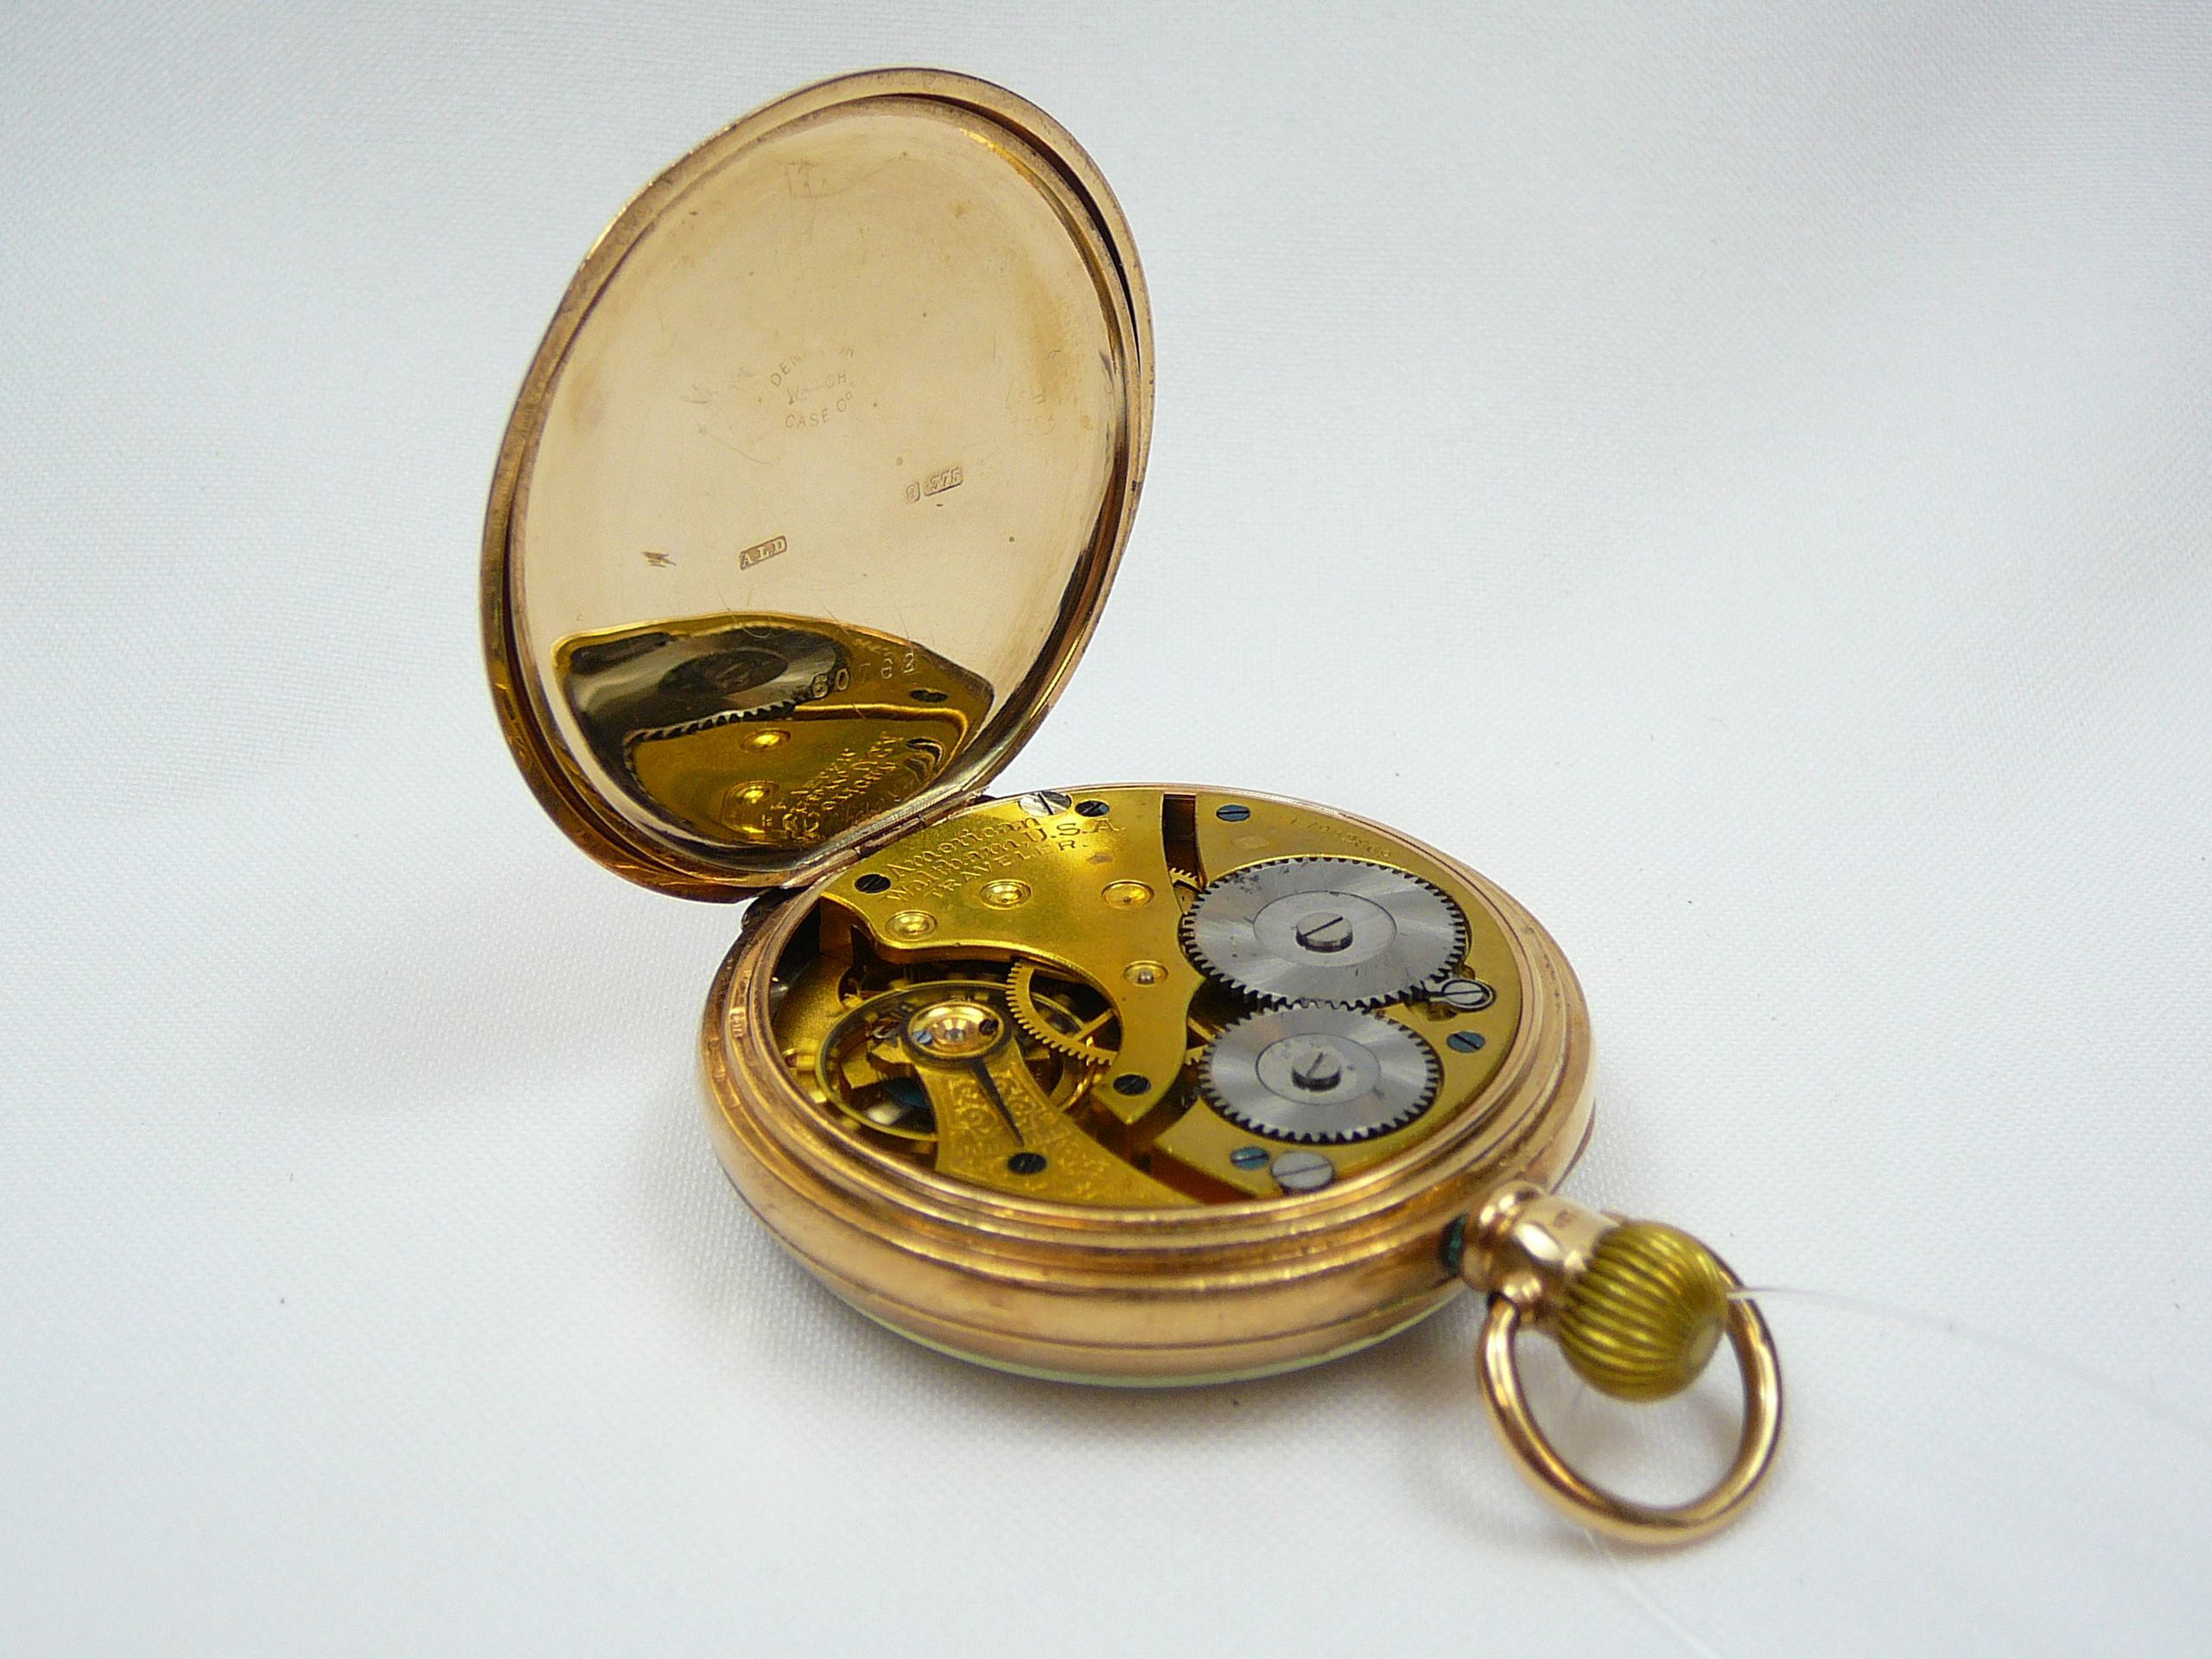 Gents Gold Pocket Watch - Image 3 of 4